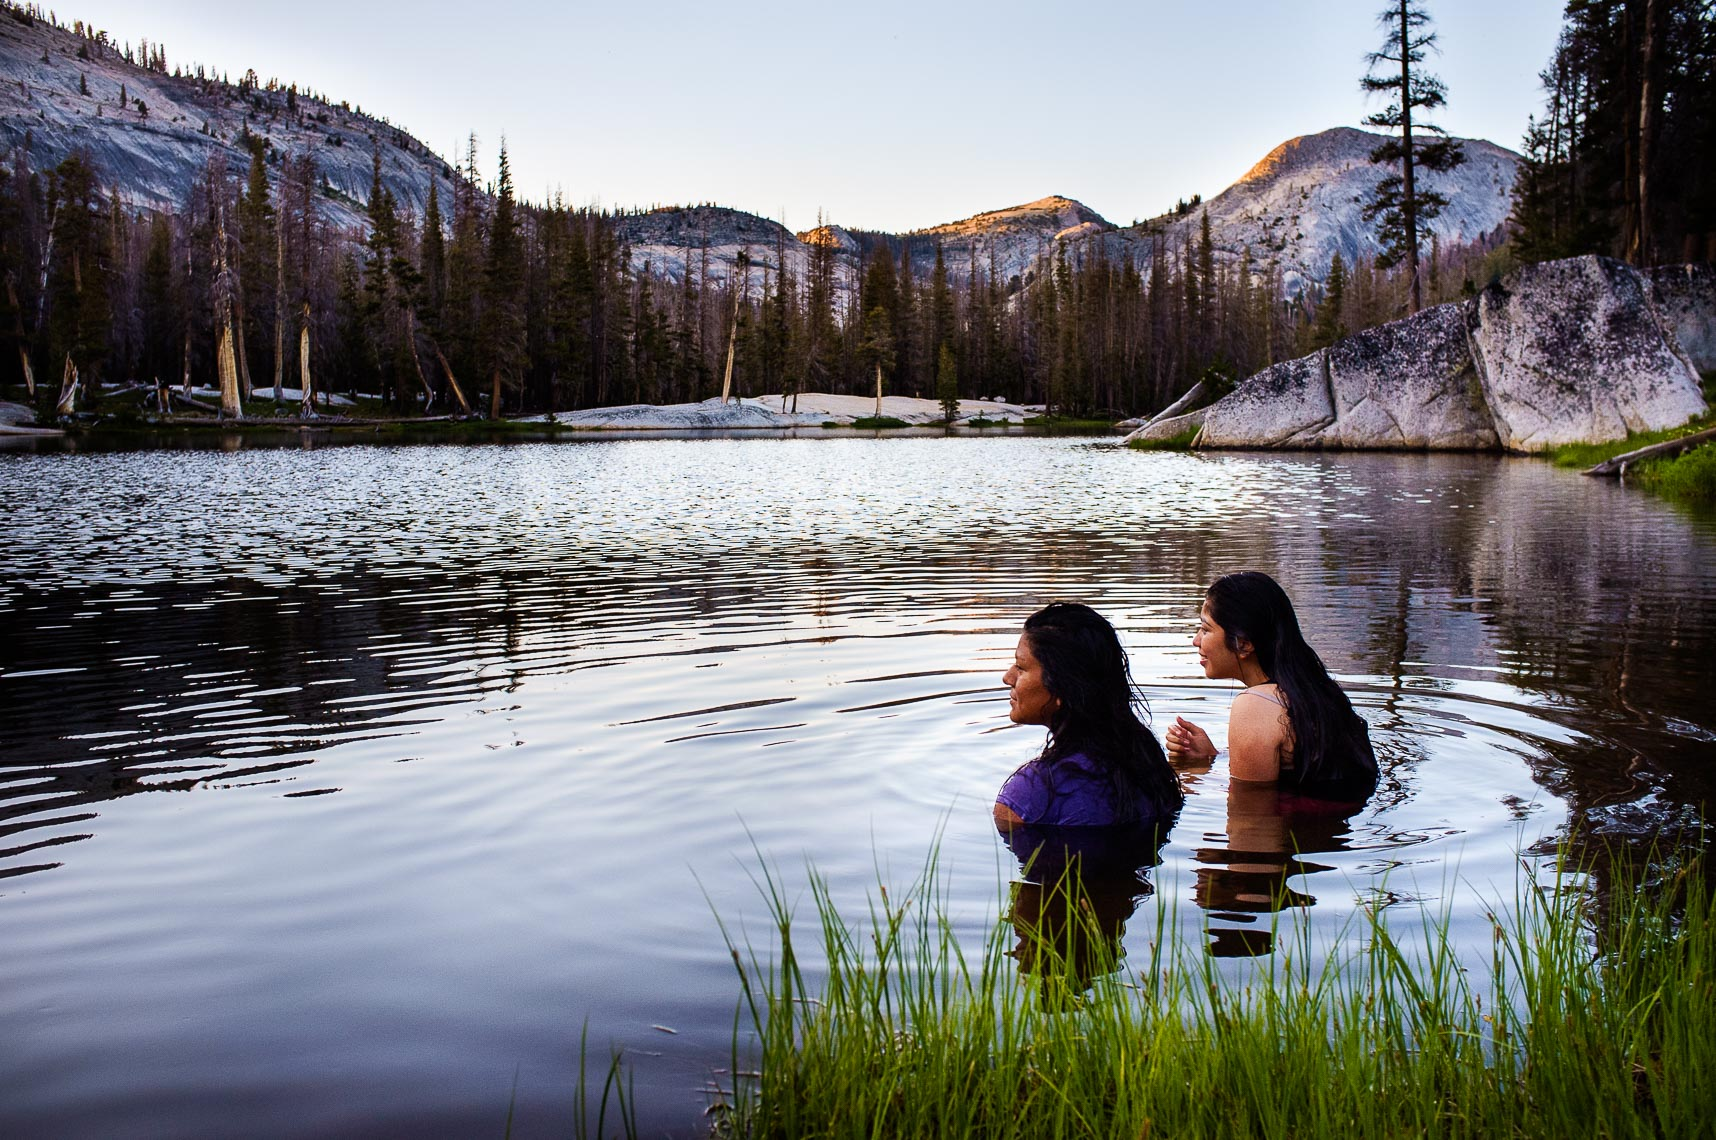 patrick_cavan_brown_woods_project_yosemite_camping_hiking_backpacking-4324